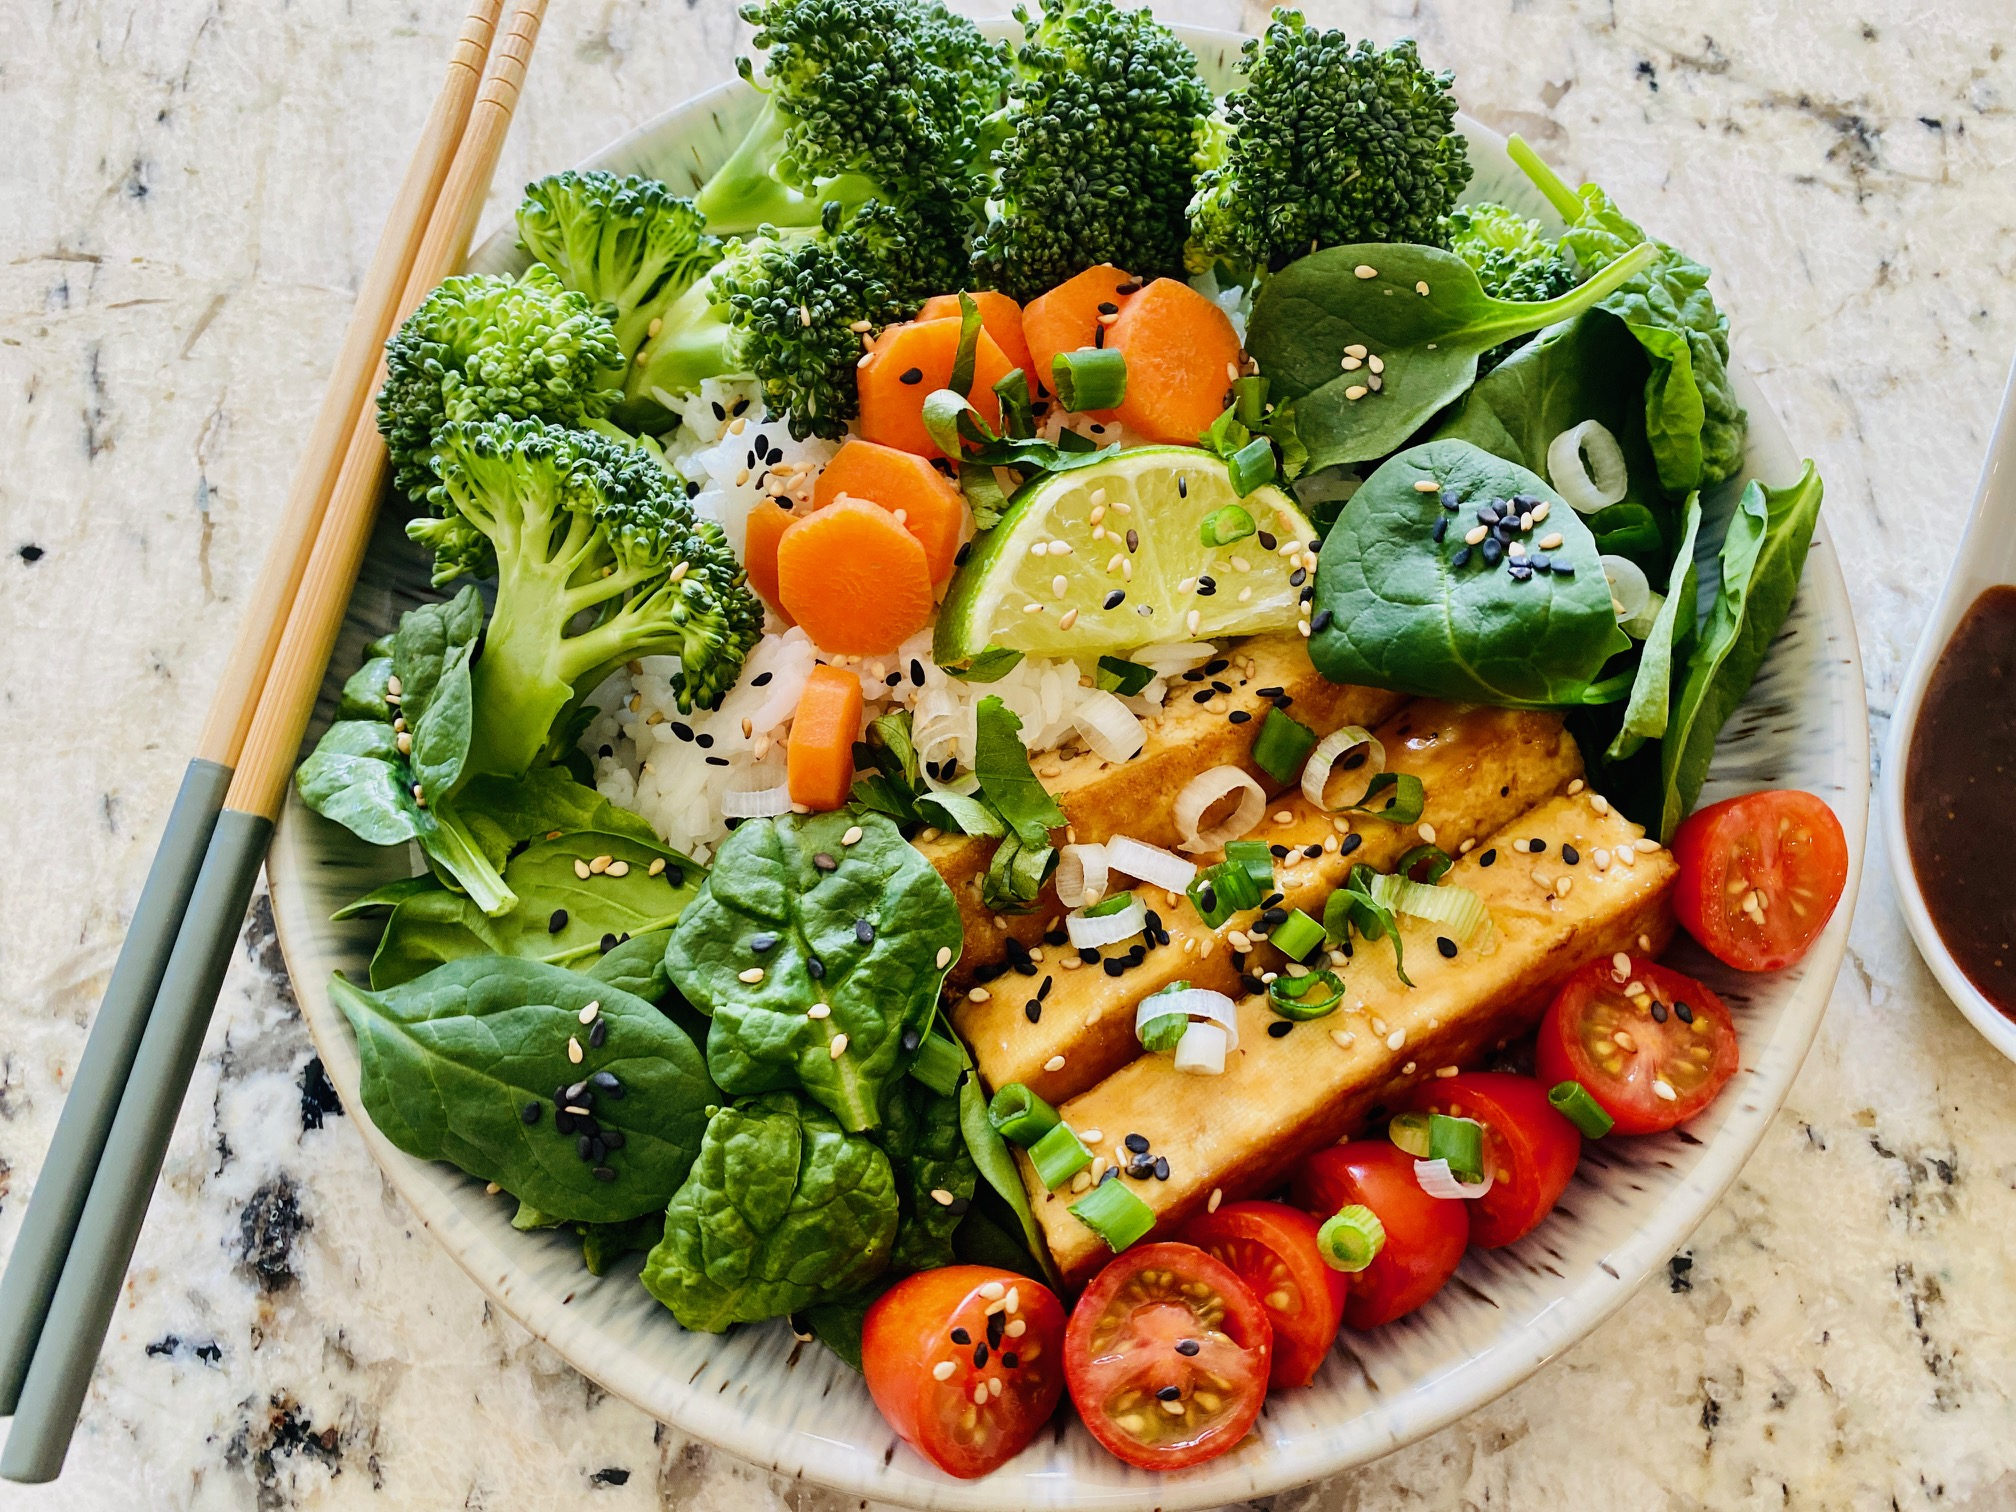 Tofu Rice Bowls with Vegetables